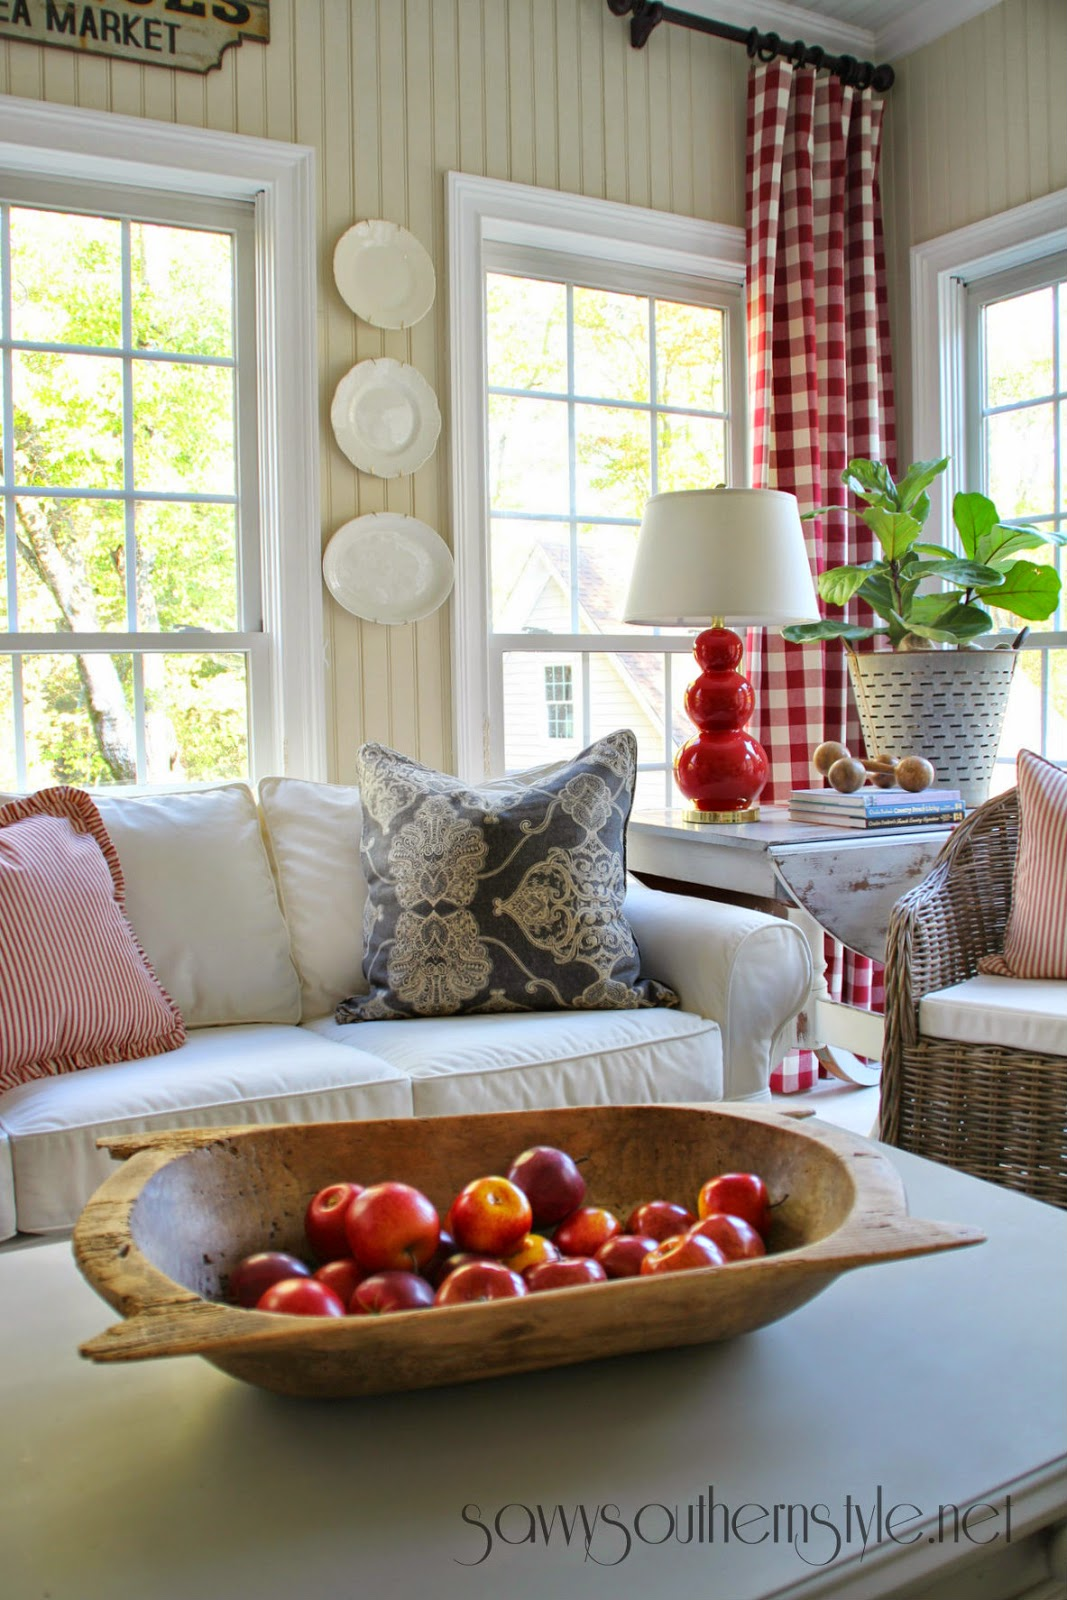 Living Room Southern Style Decorating savvy southern style decorating with red 1 31 2015